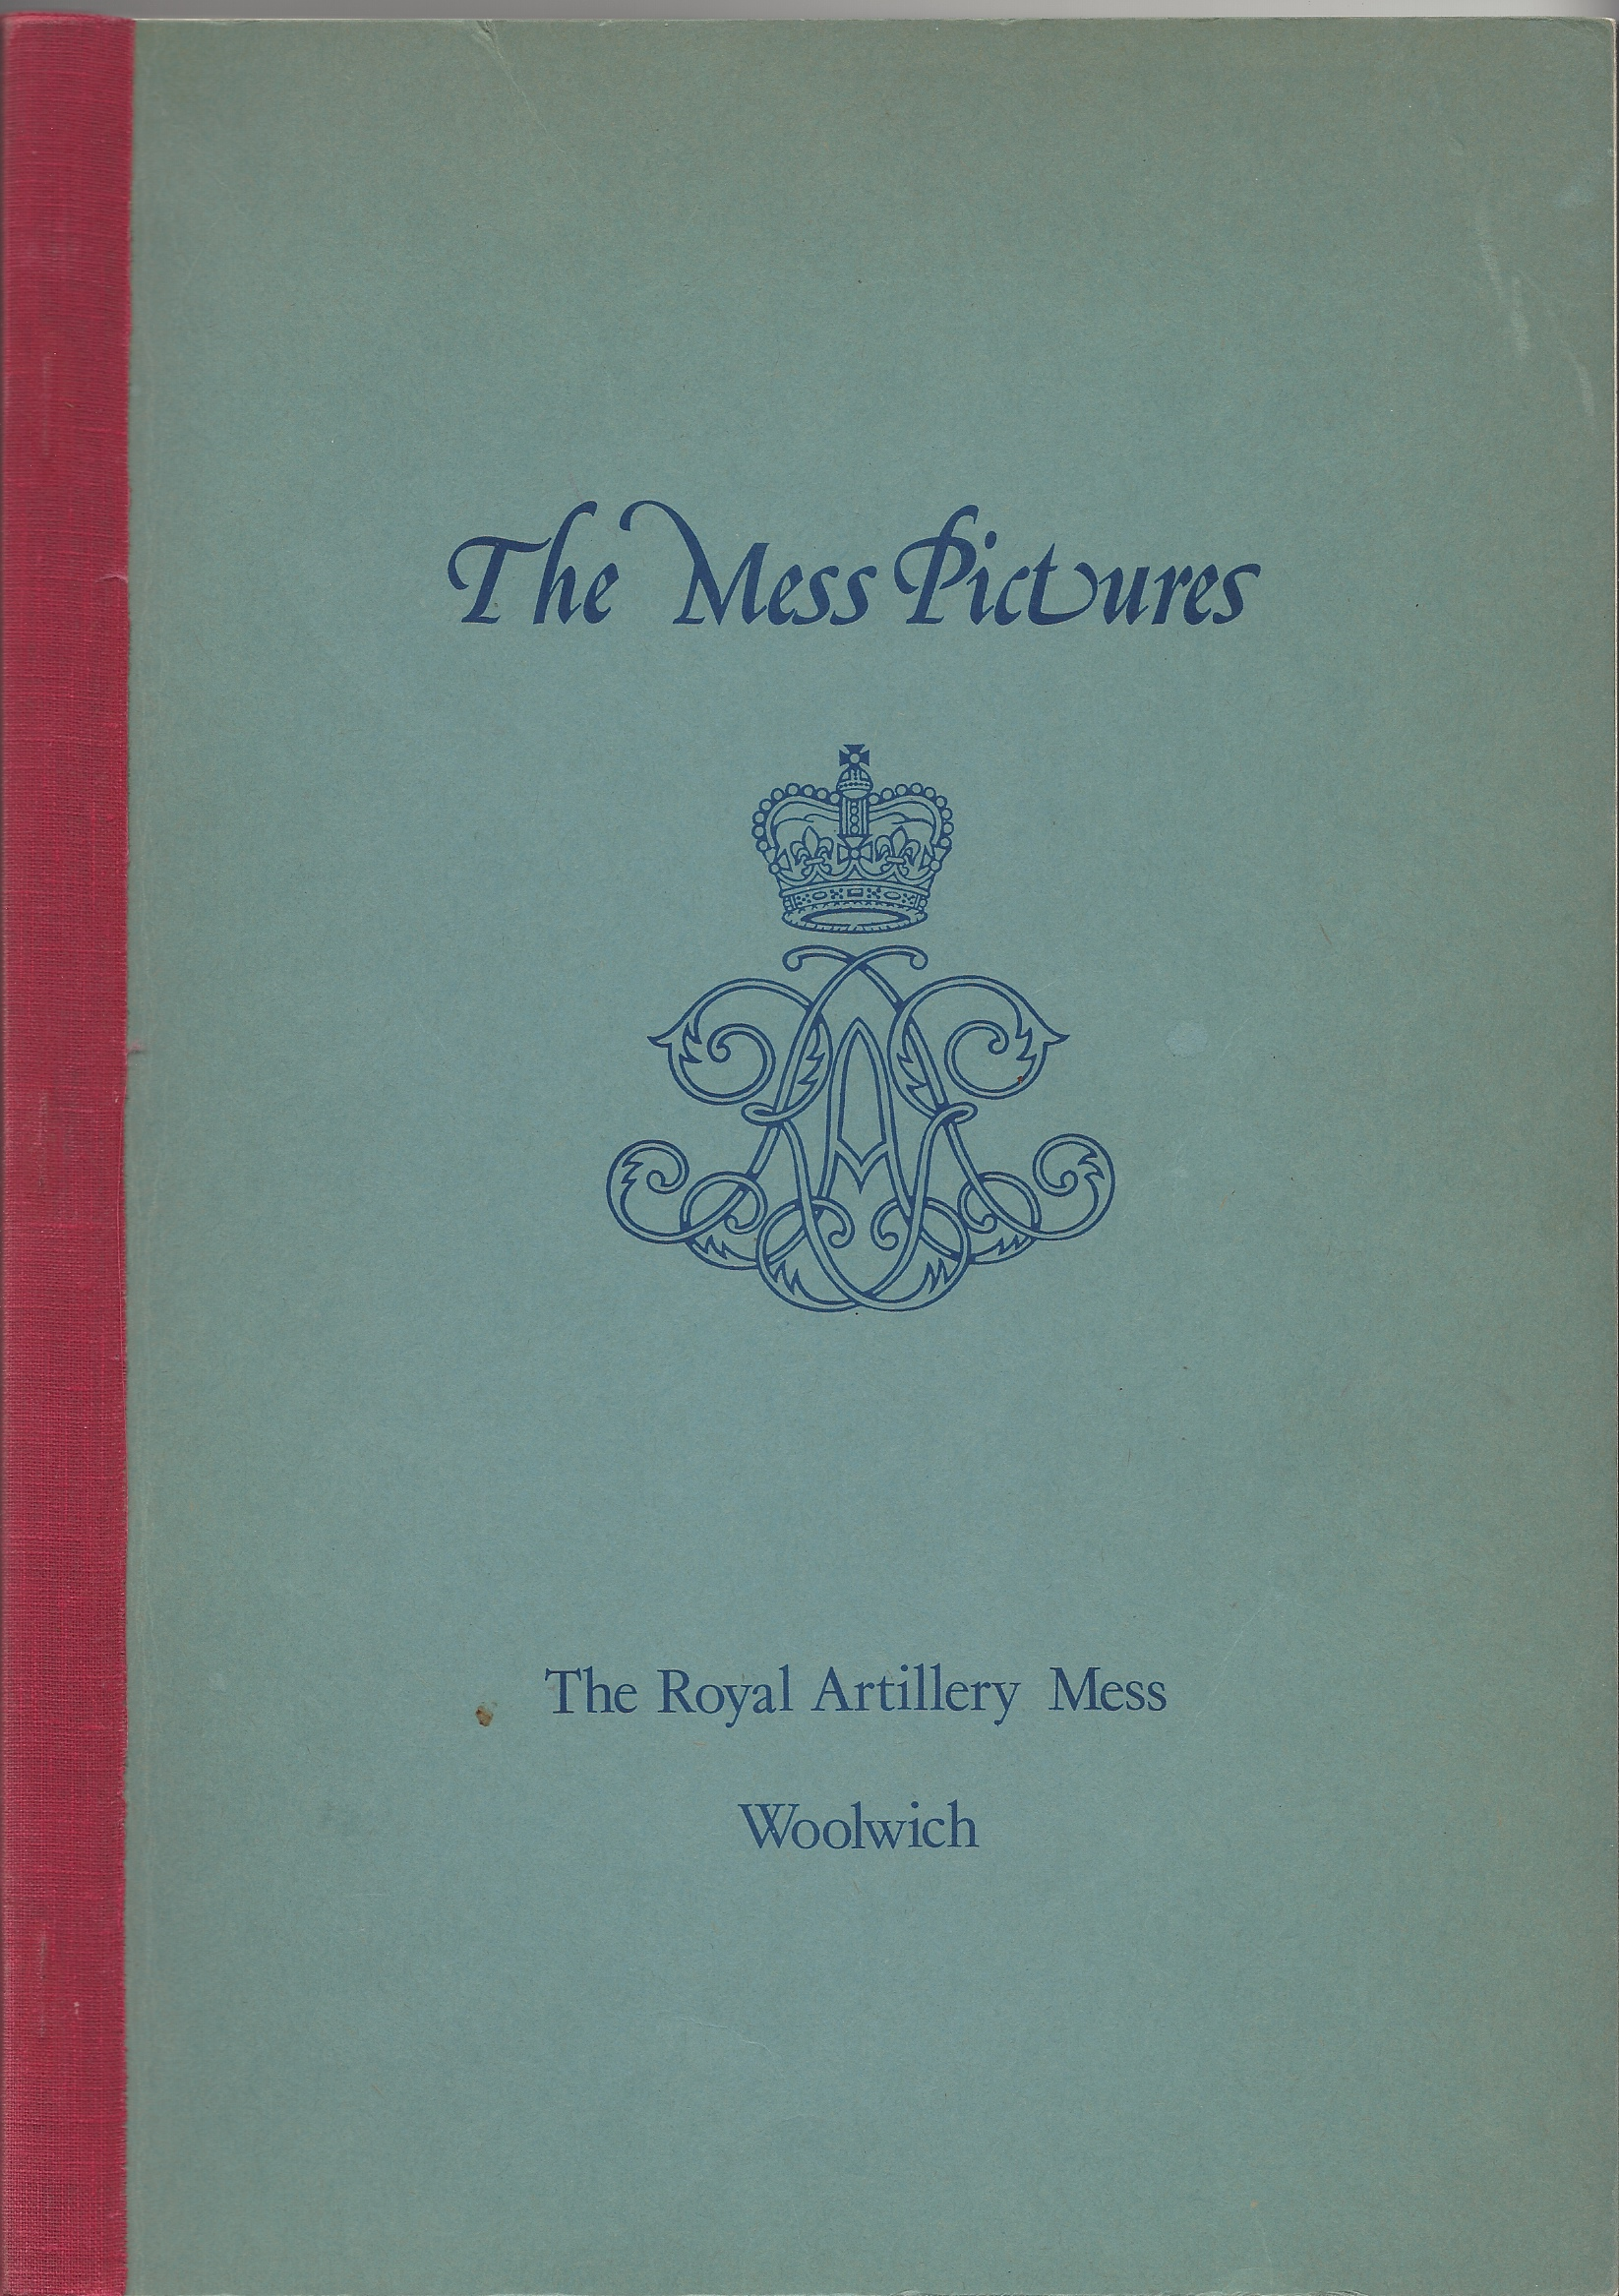 Image for A Catalogue of Pictures, Sculpture & Models in the collection of The Royal Artillery Mess, Woolwich